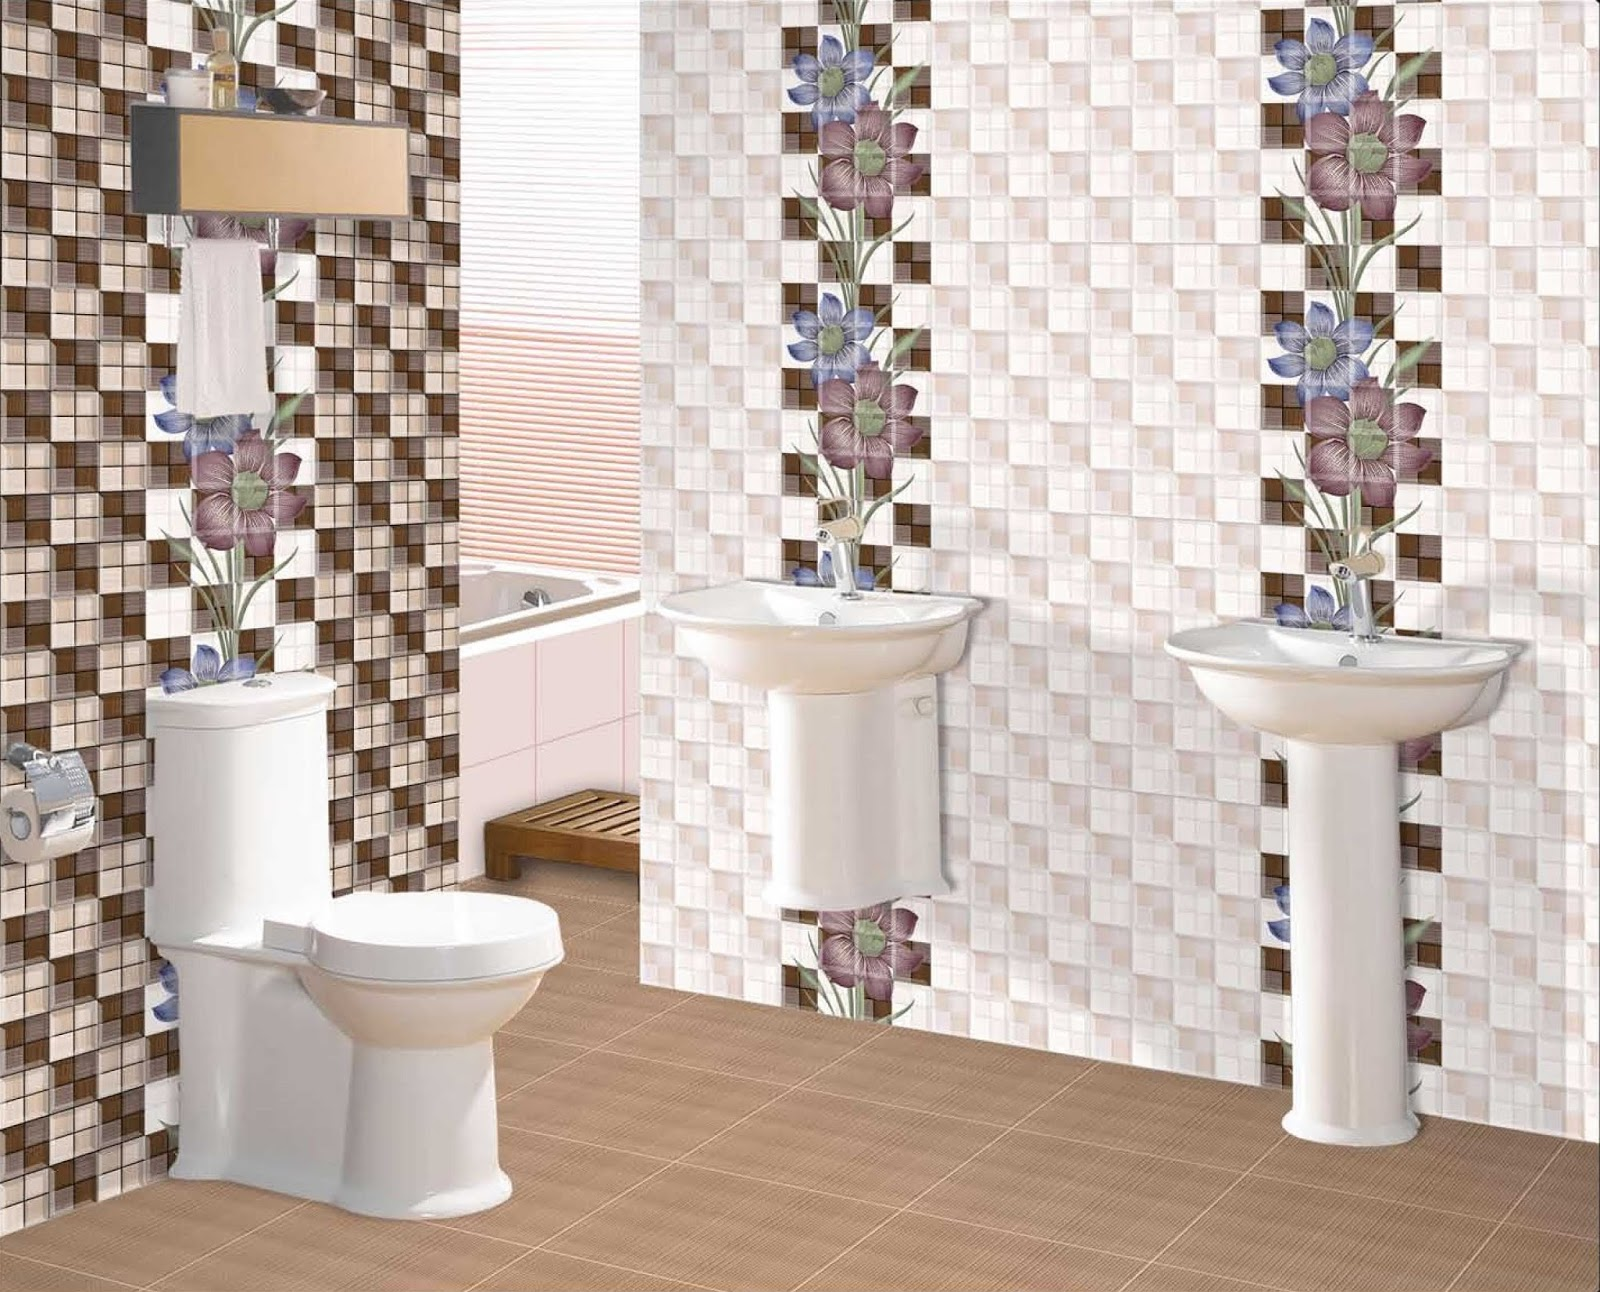 Bathroom Ideas   Digital Wall Tiles Part 20